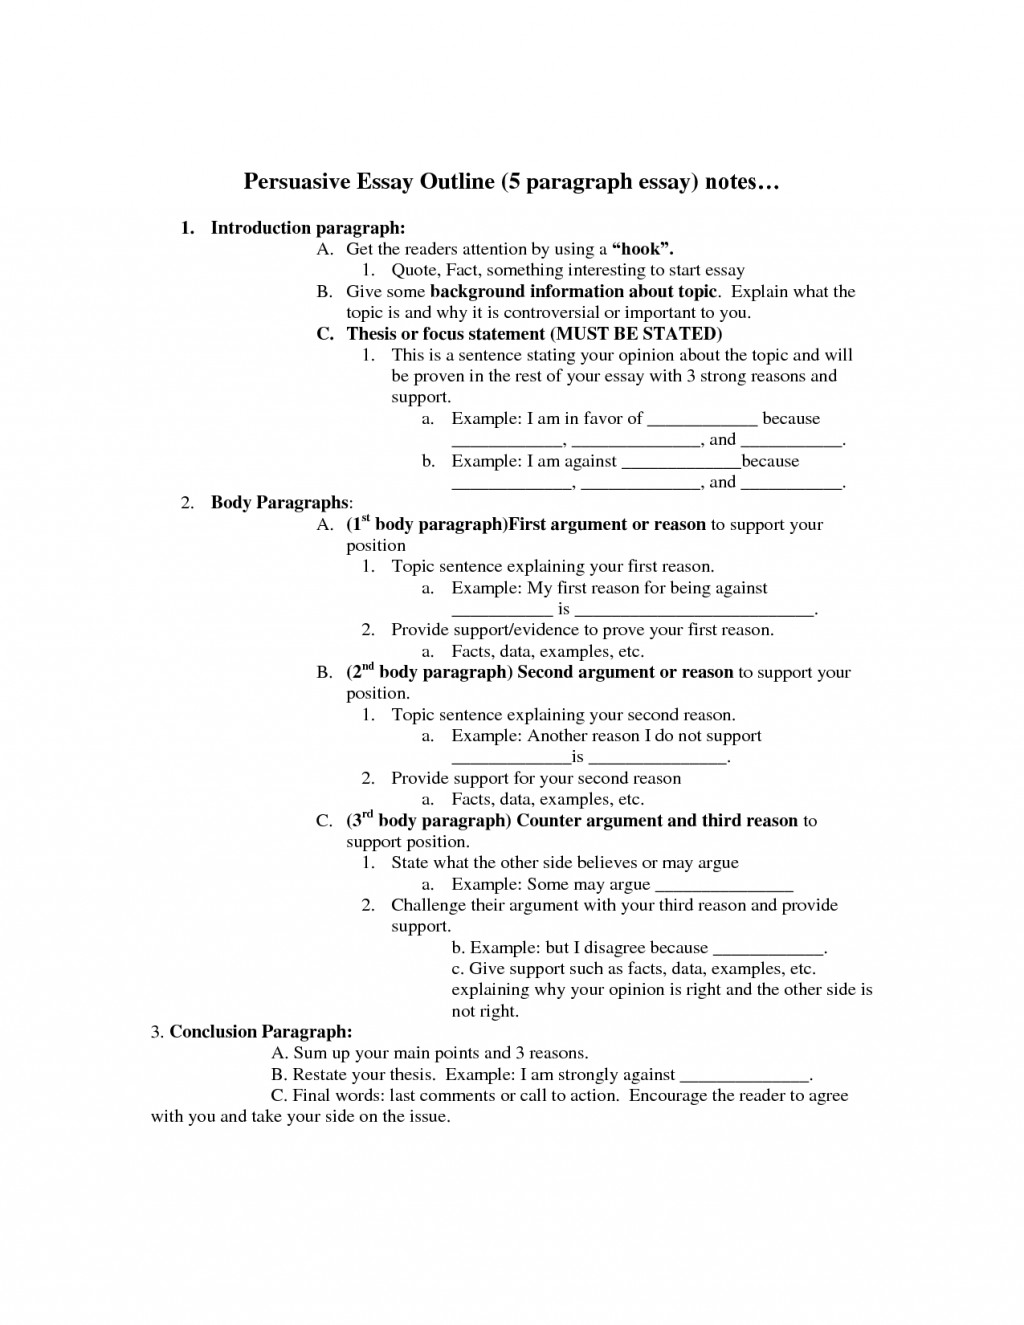 006 Persuasive Essay Outline Unbelievable Format Middle School Good Topics 5th Grade Pdf Large